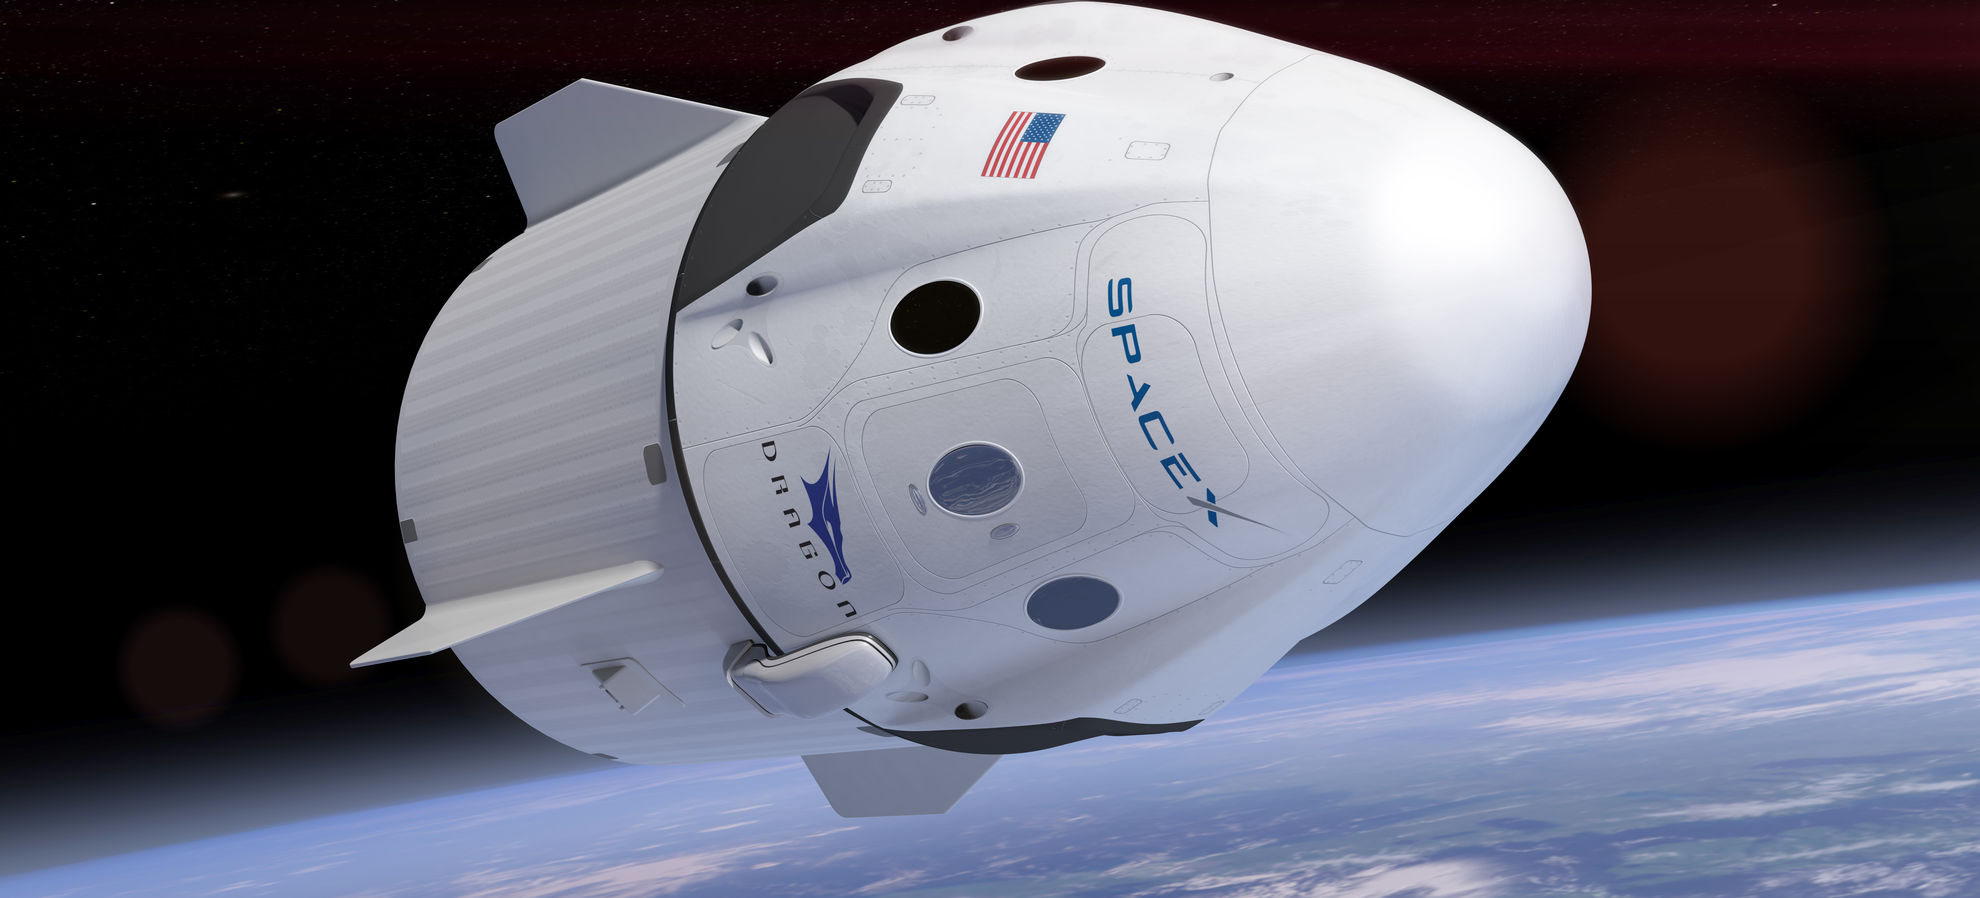 Elon Musk Announces Daring SpaceX Dragon Flight Beyond ...